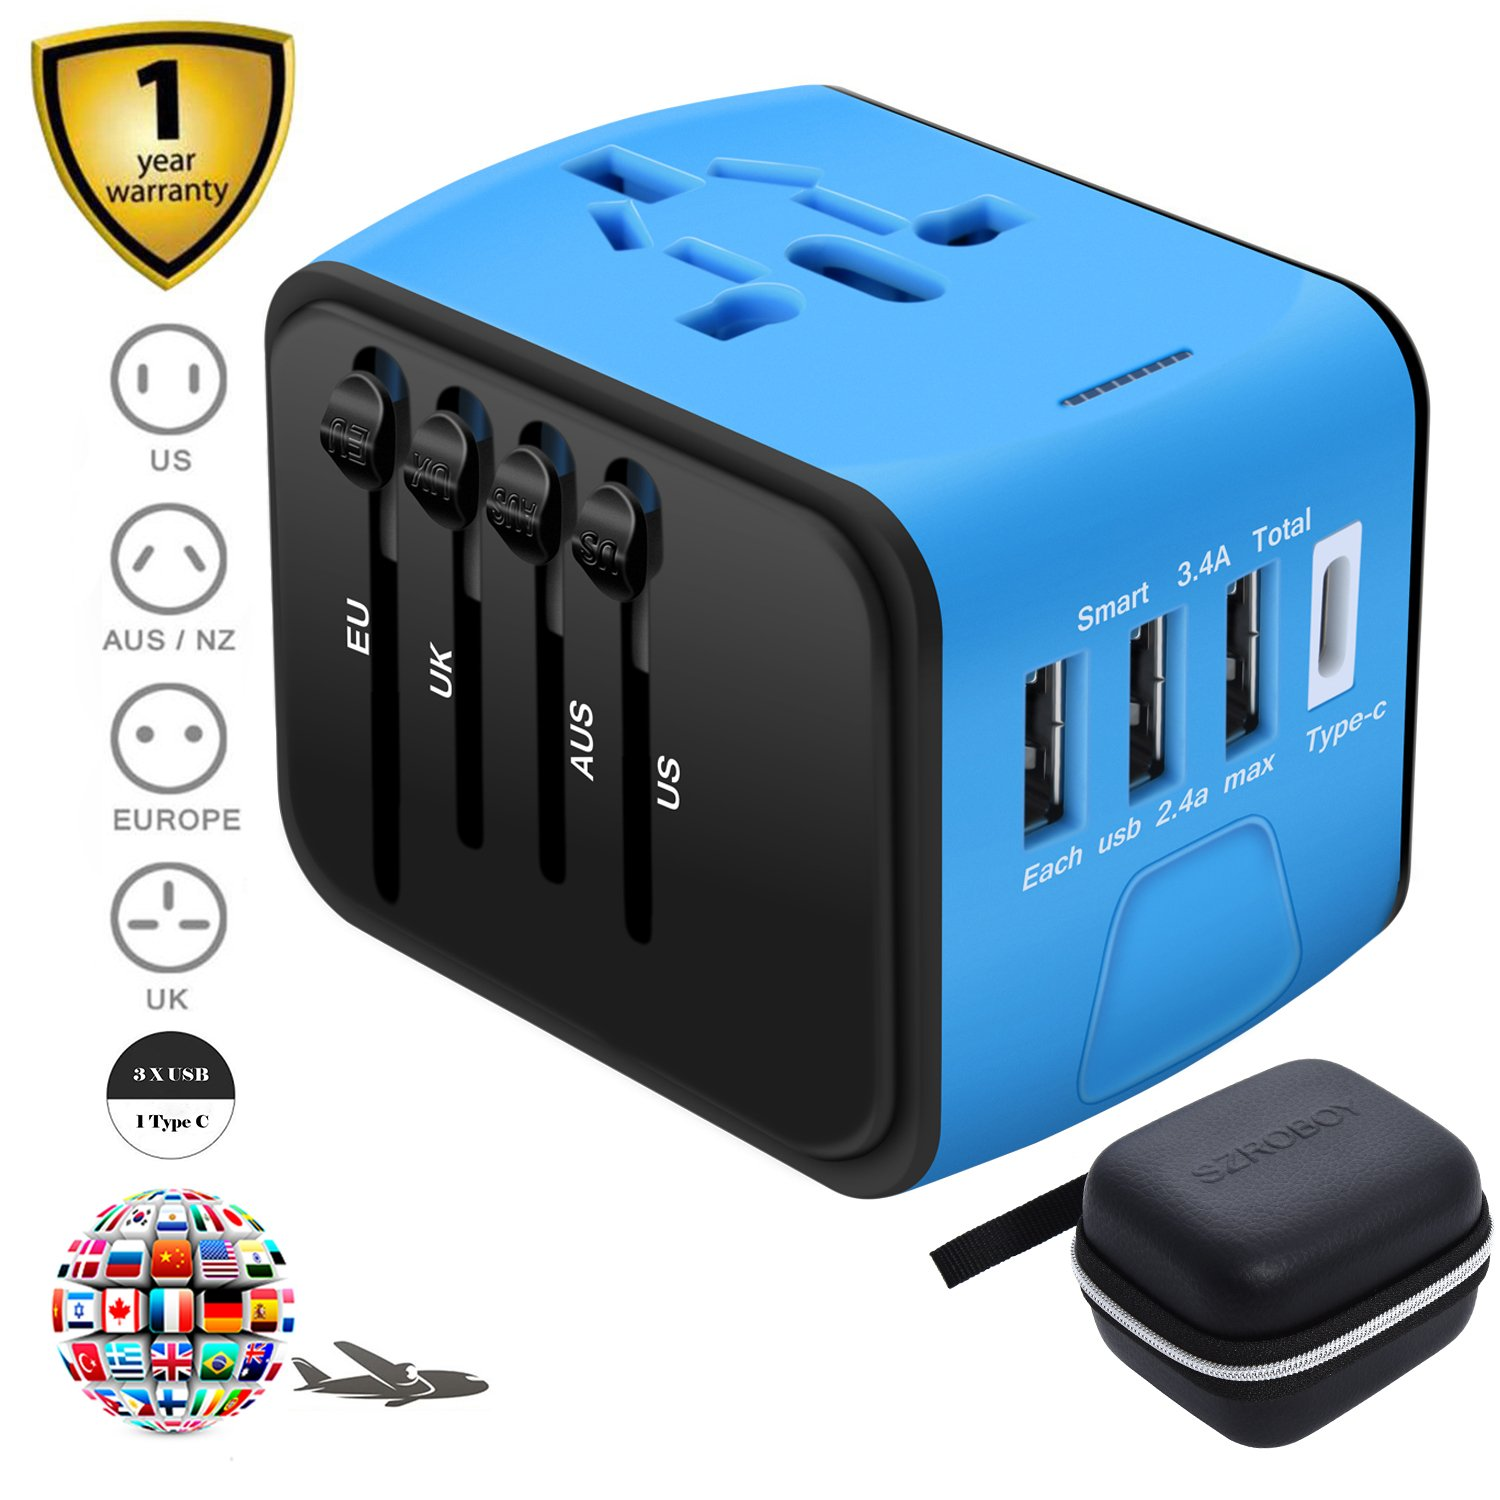 SZROBOY CSCD Travel Adapter,All-in-one International USB Travel Adapter with High Speed 3.0 Type C+3-port USB Worldwide AC Wall Outlet Plugs for For business travel of US, EU, UK, AU 200+